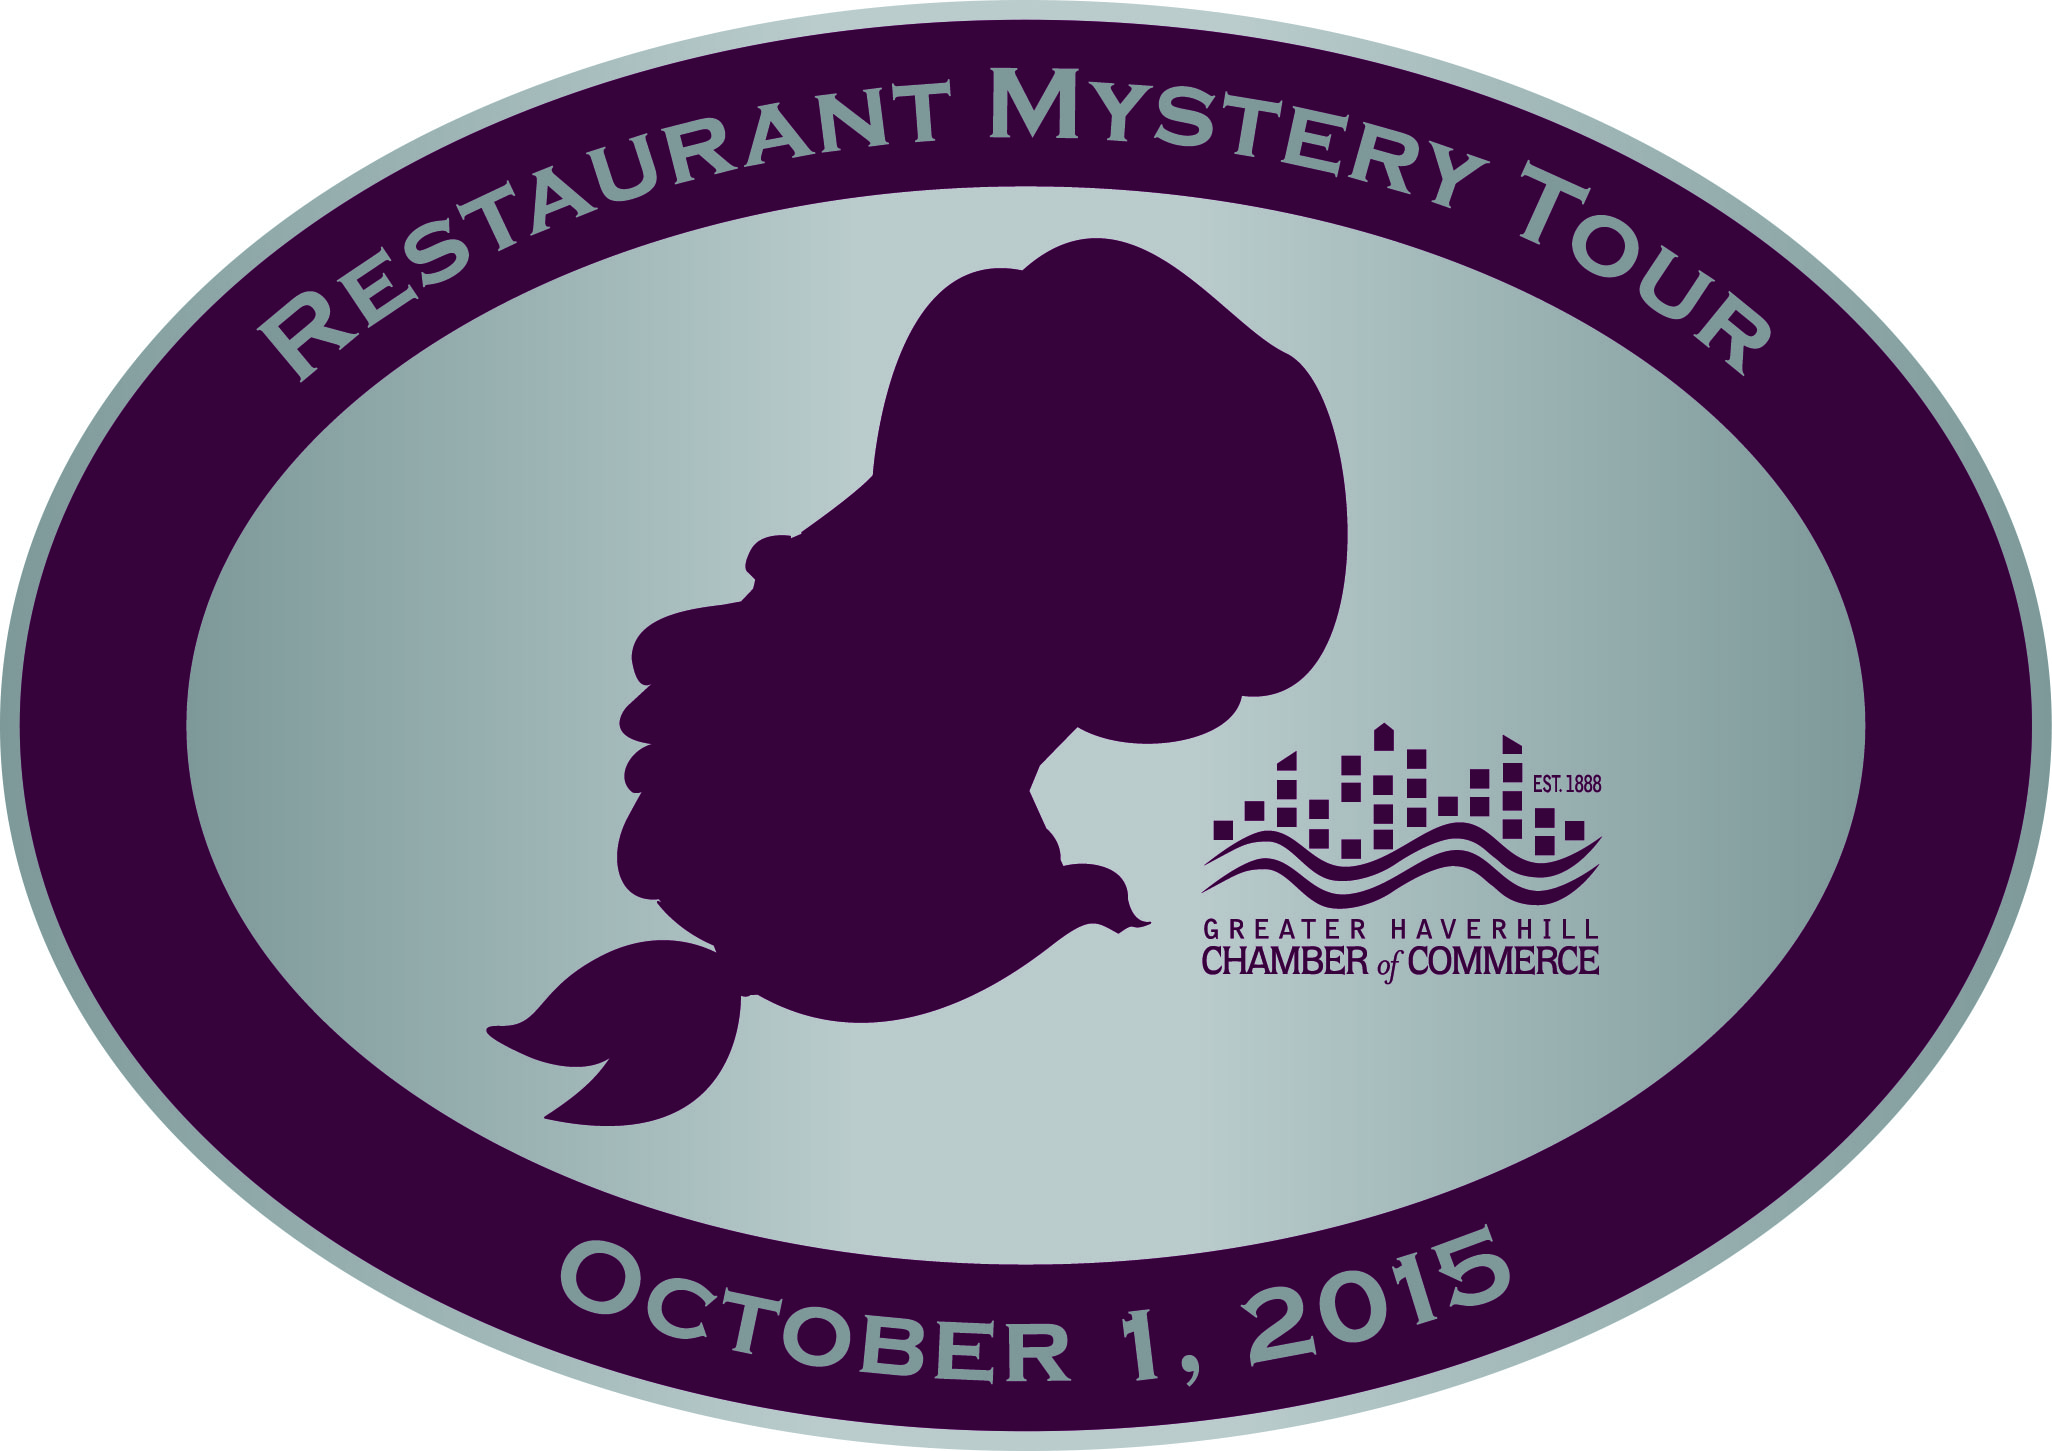 Restaurant Mystery Tour Heats up for 3rd Year!